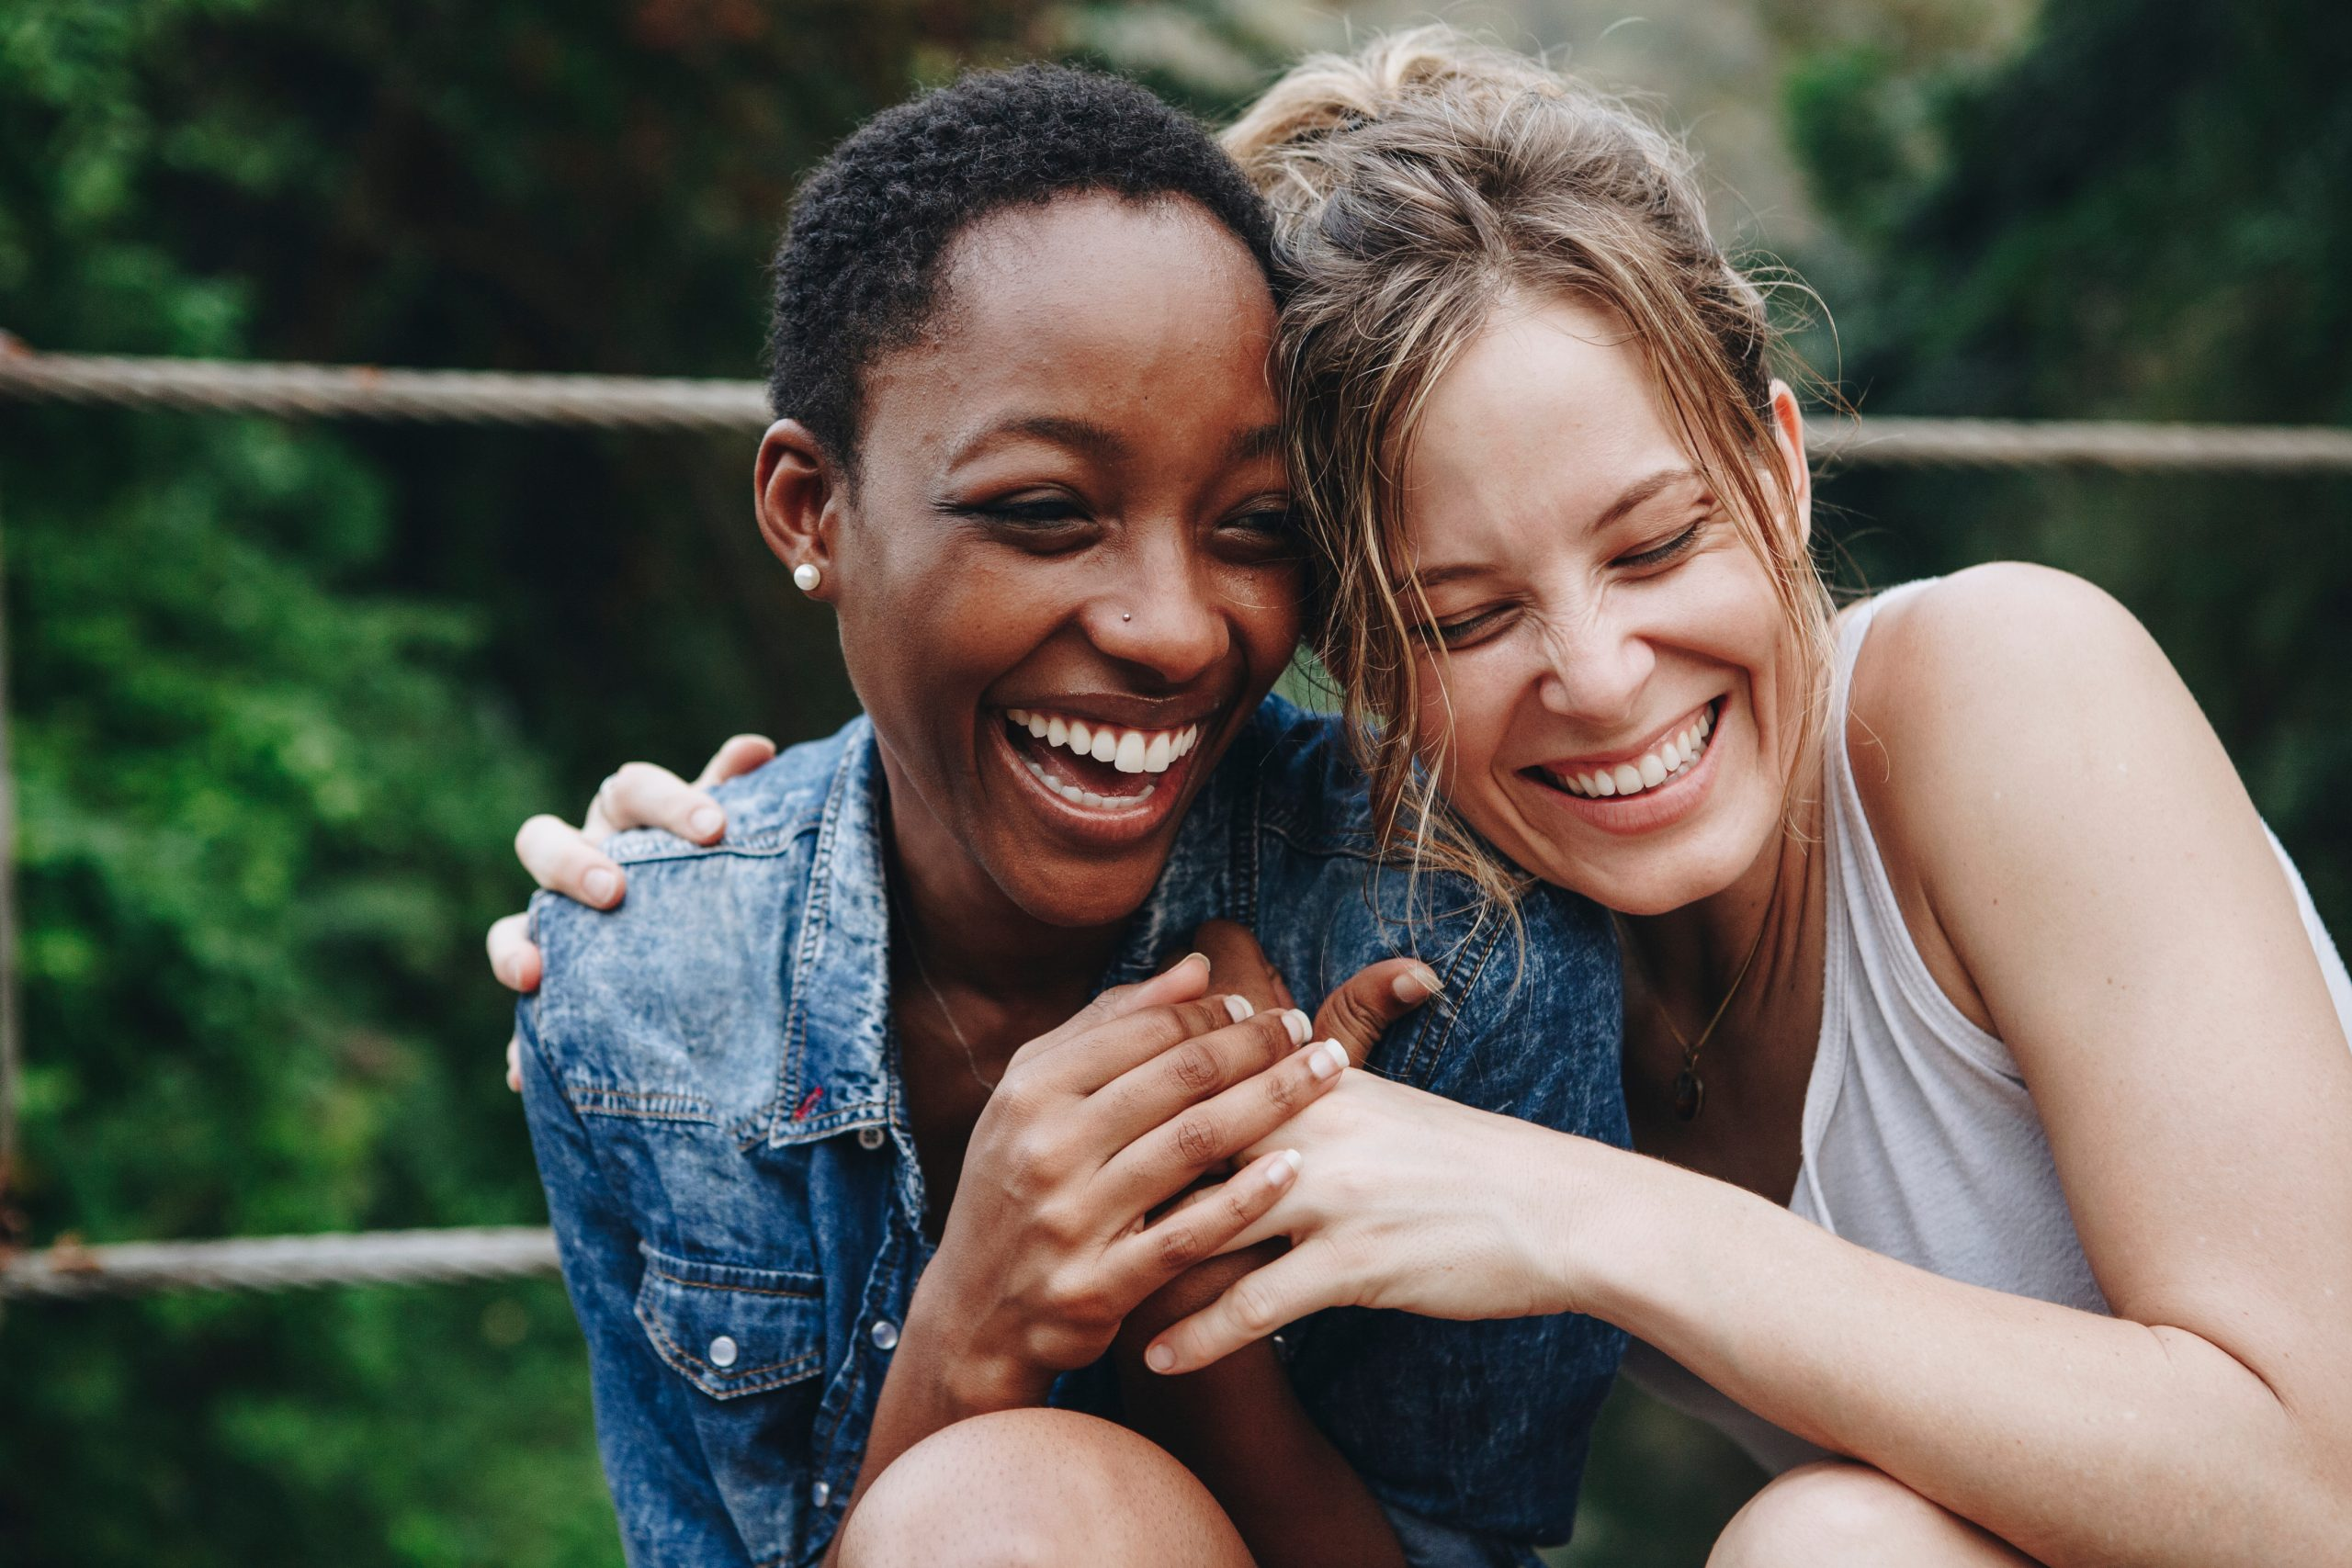 Two females embracing and laughing